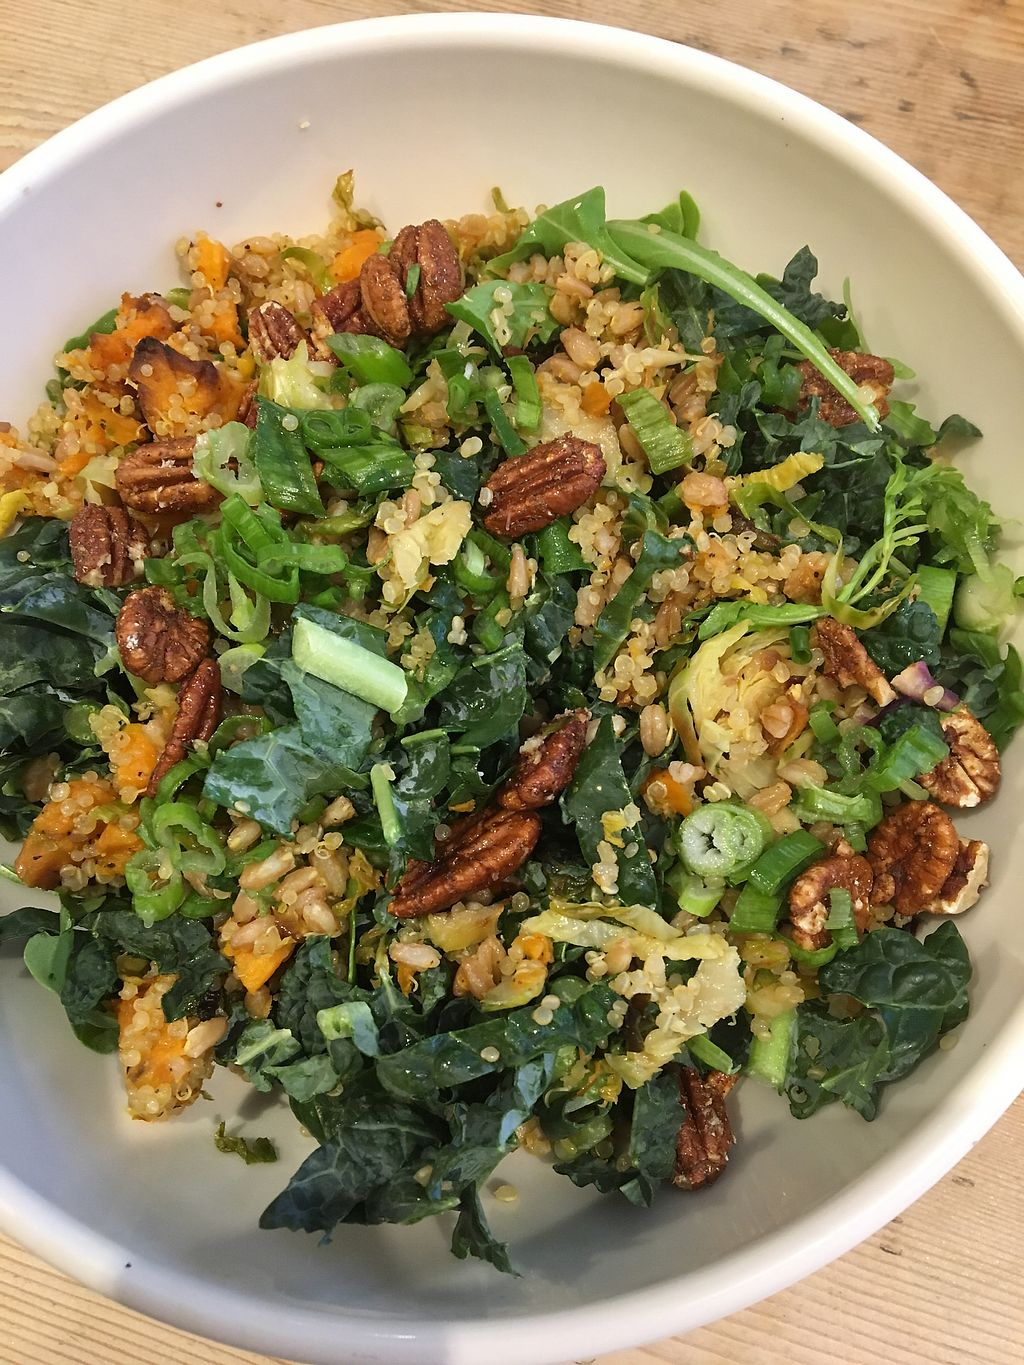 "Photo of Le Pain Quotidien - 97th & Madison  by <a href=""/members/profile/JJones315"">JJones315</a> <br/>Warm grain bowl (w/o cheese) <br/> April 17, 2018  - <a href='/contact/abuse/image/86277/387332'>Report</a>"